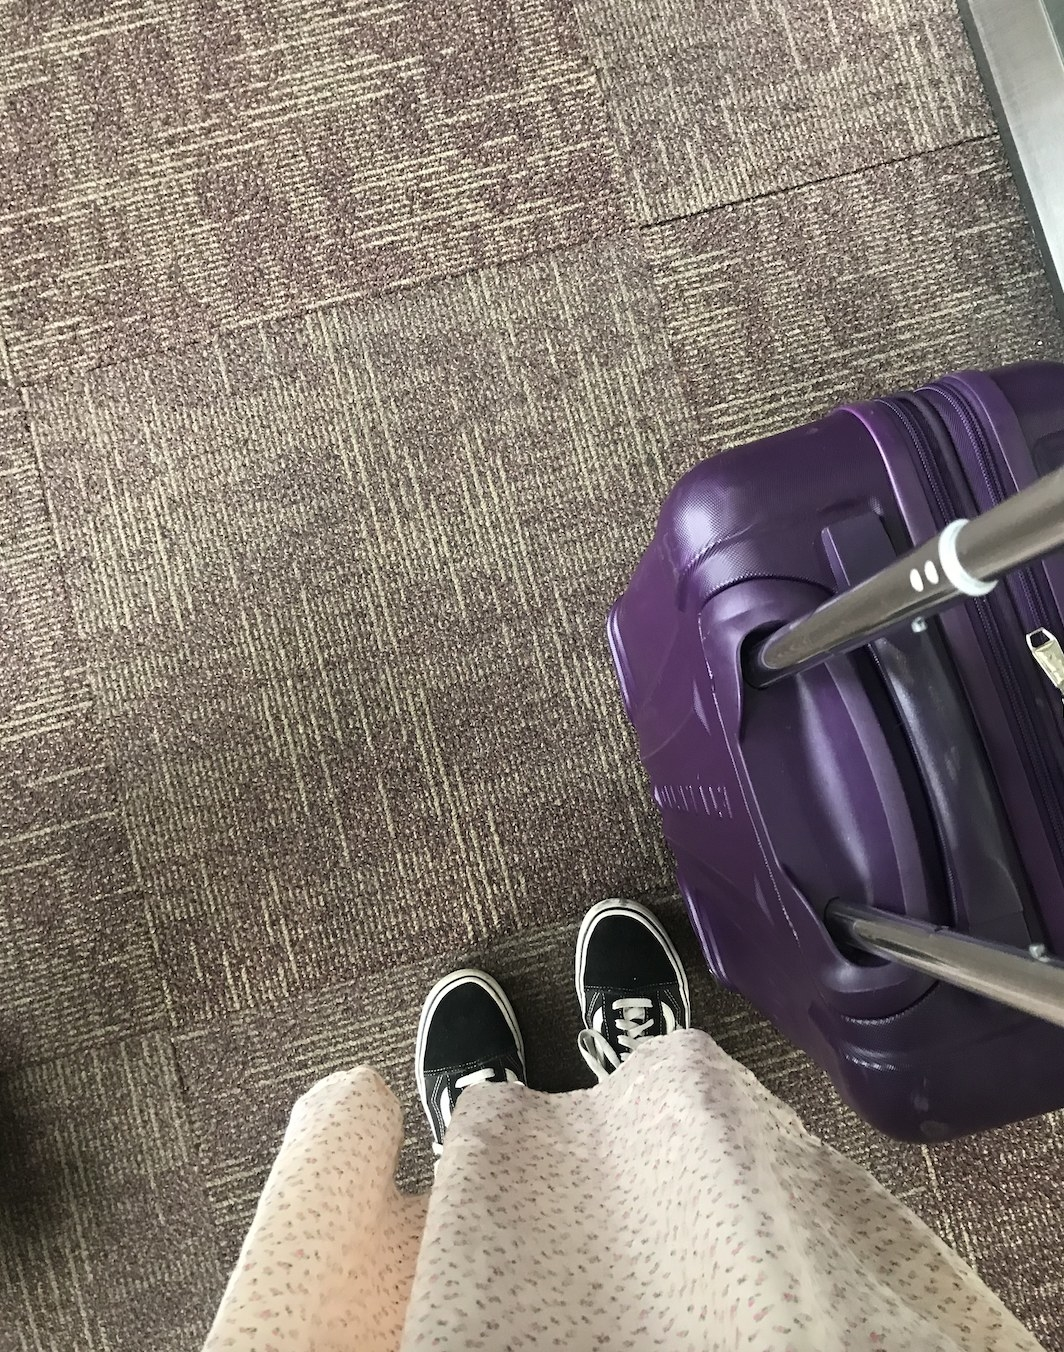 Image of a person's feet with a rolly carry-on suitcase